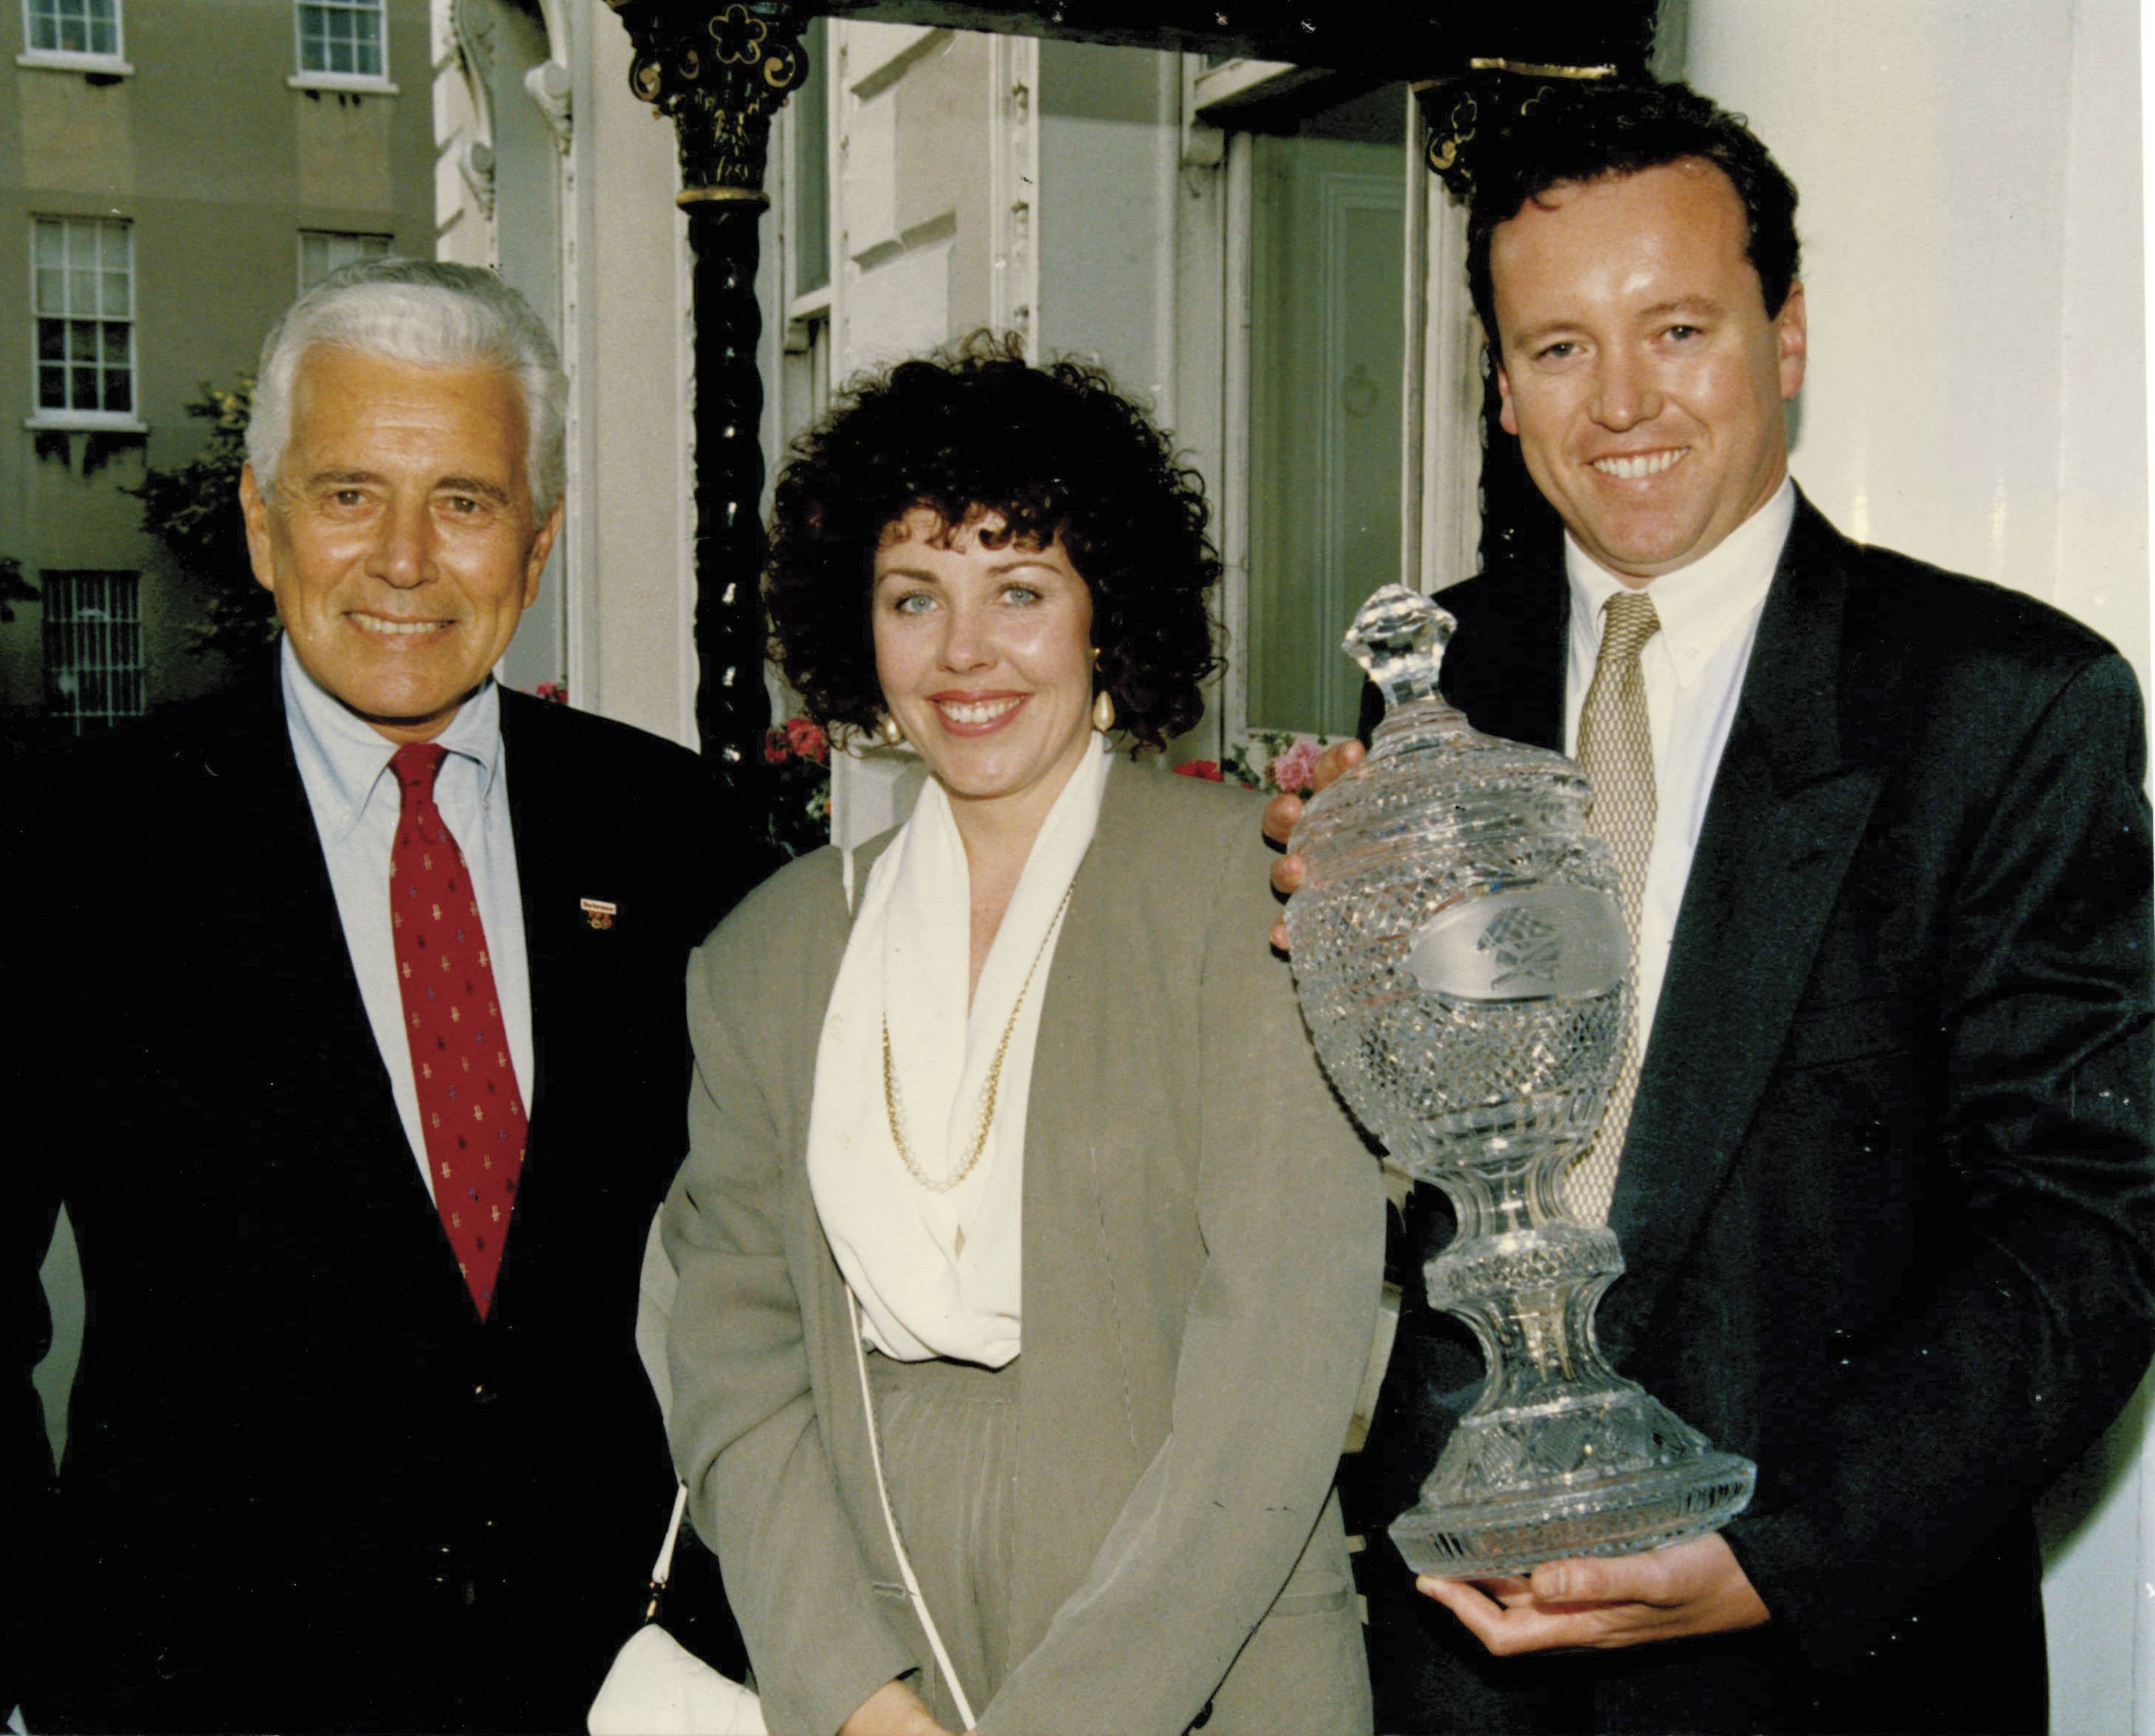 John Forsythe of Dynasty fame along with Jean and the Budweiser Irish Derby Trophy at Dublin's Mansion House.